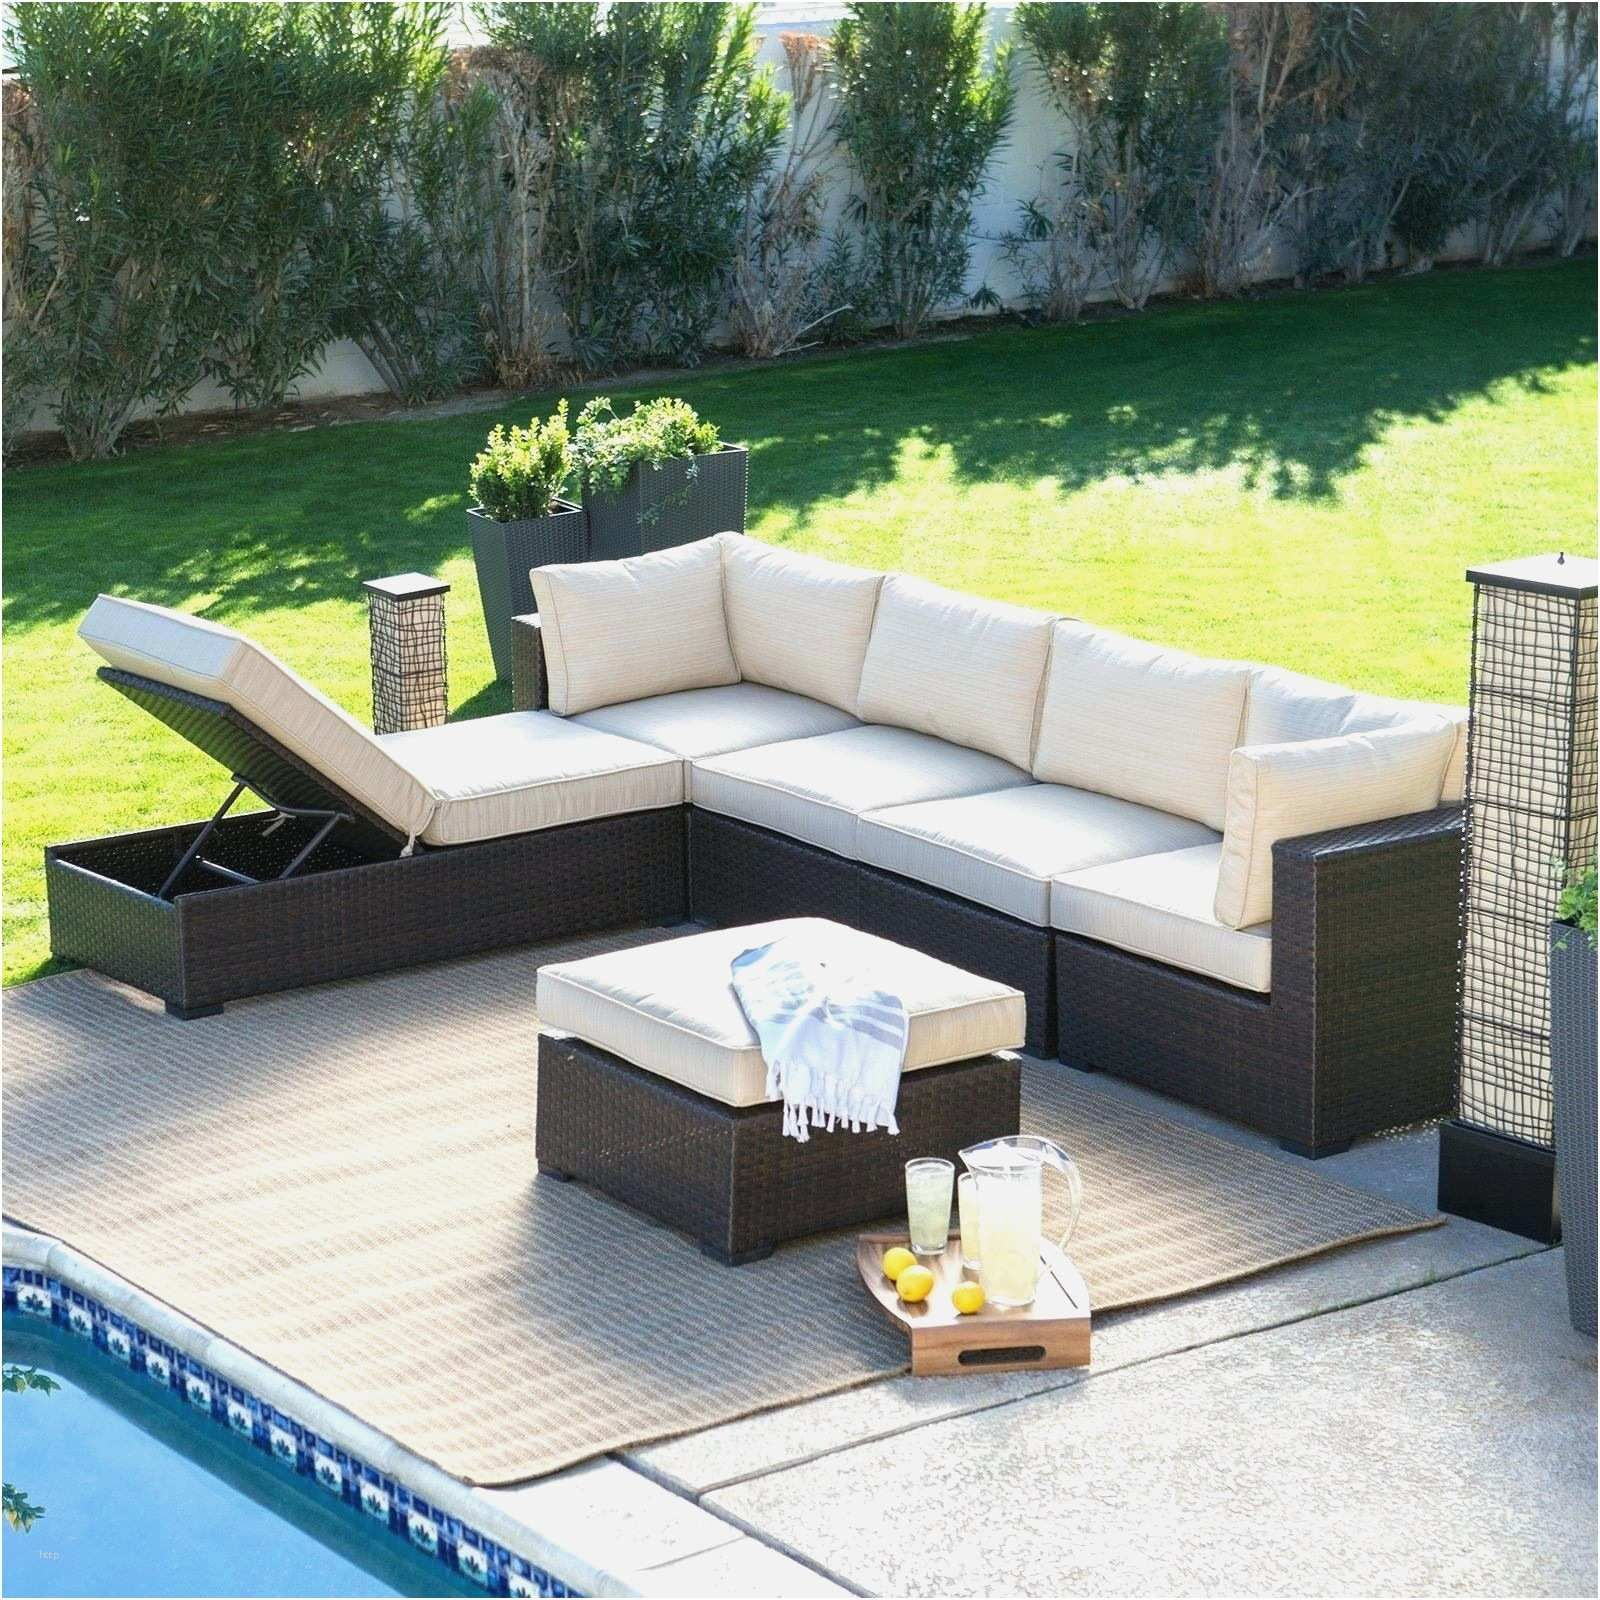 Home By Sunset Patio Furniture Lovely 50 Beautiful L Shaped Patio